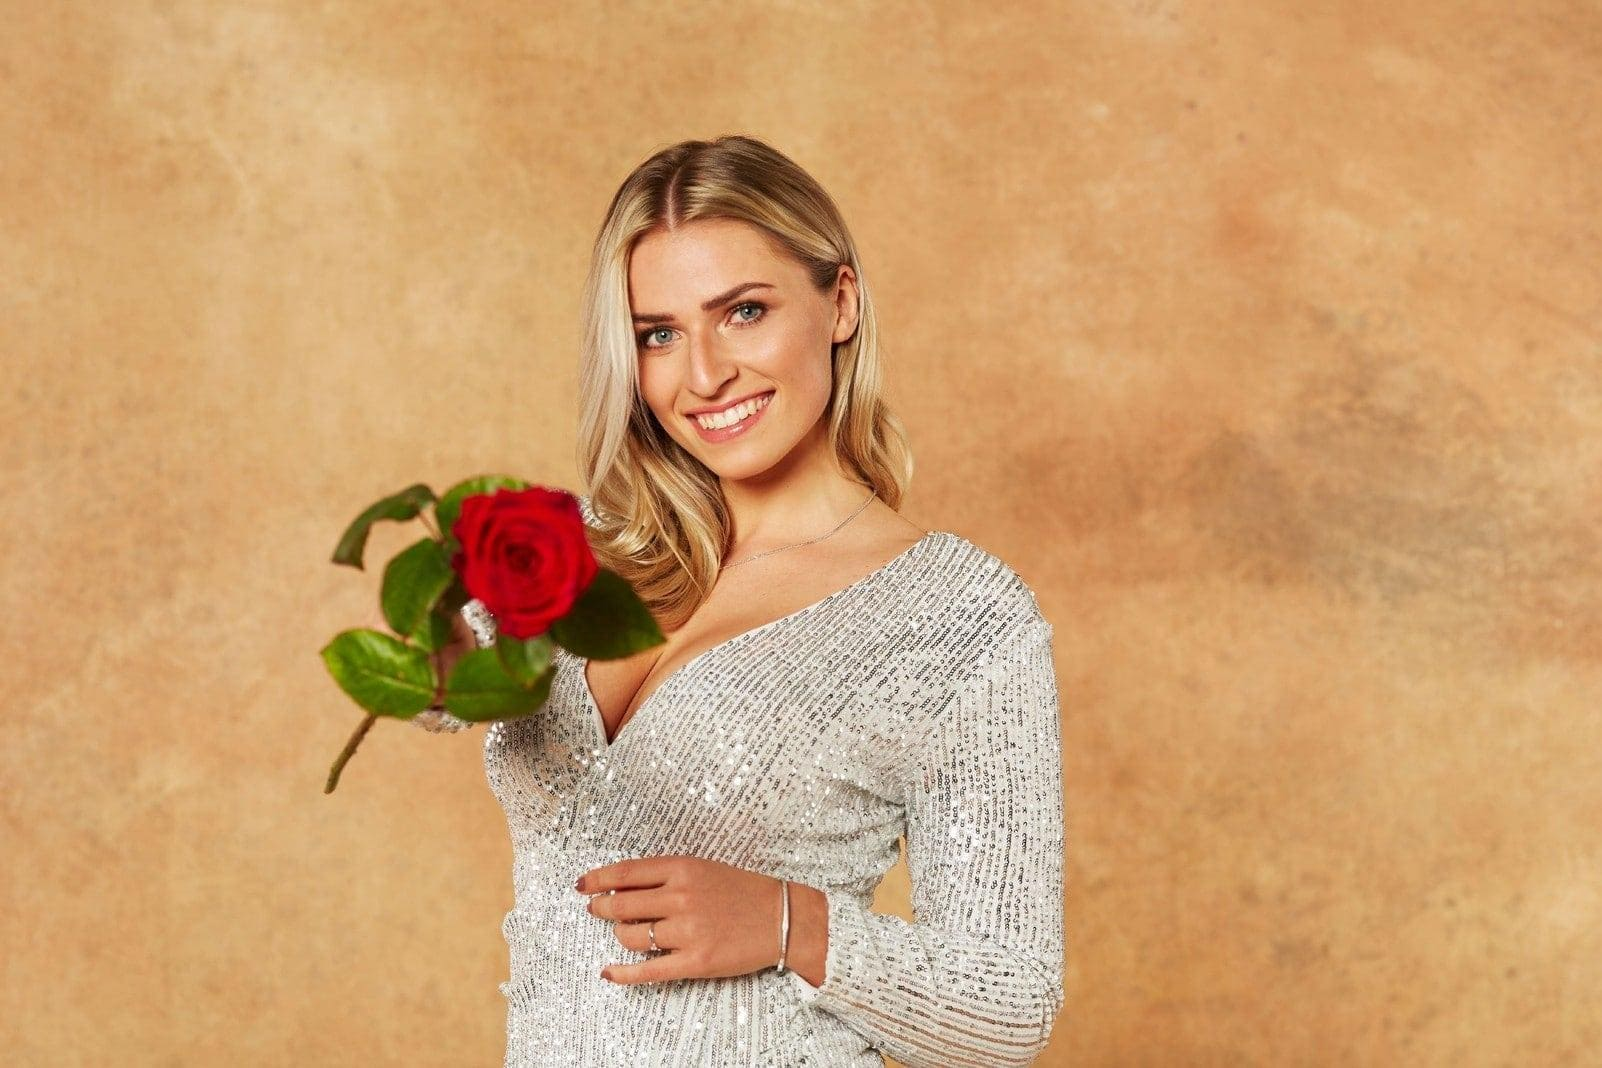 Der Bachelor Laura Rose